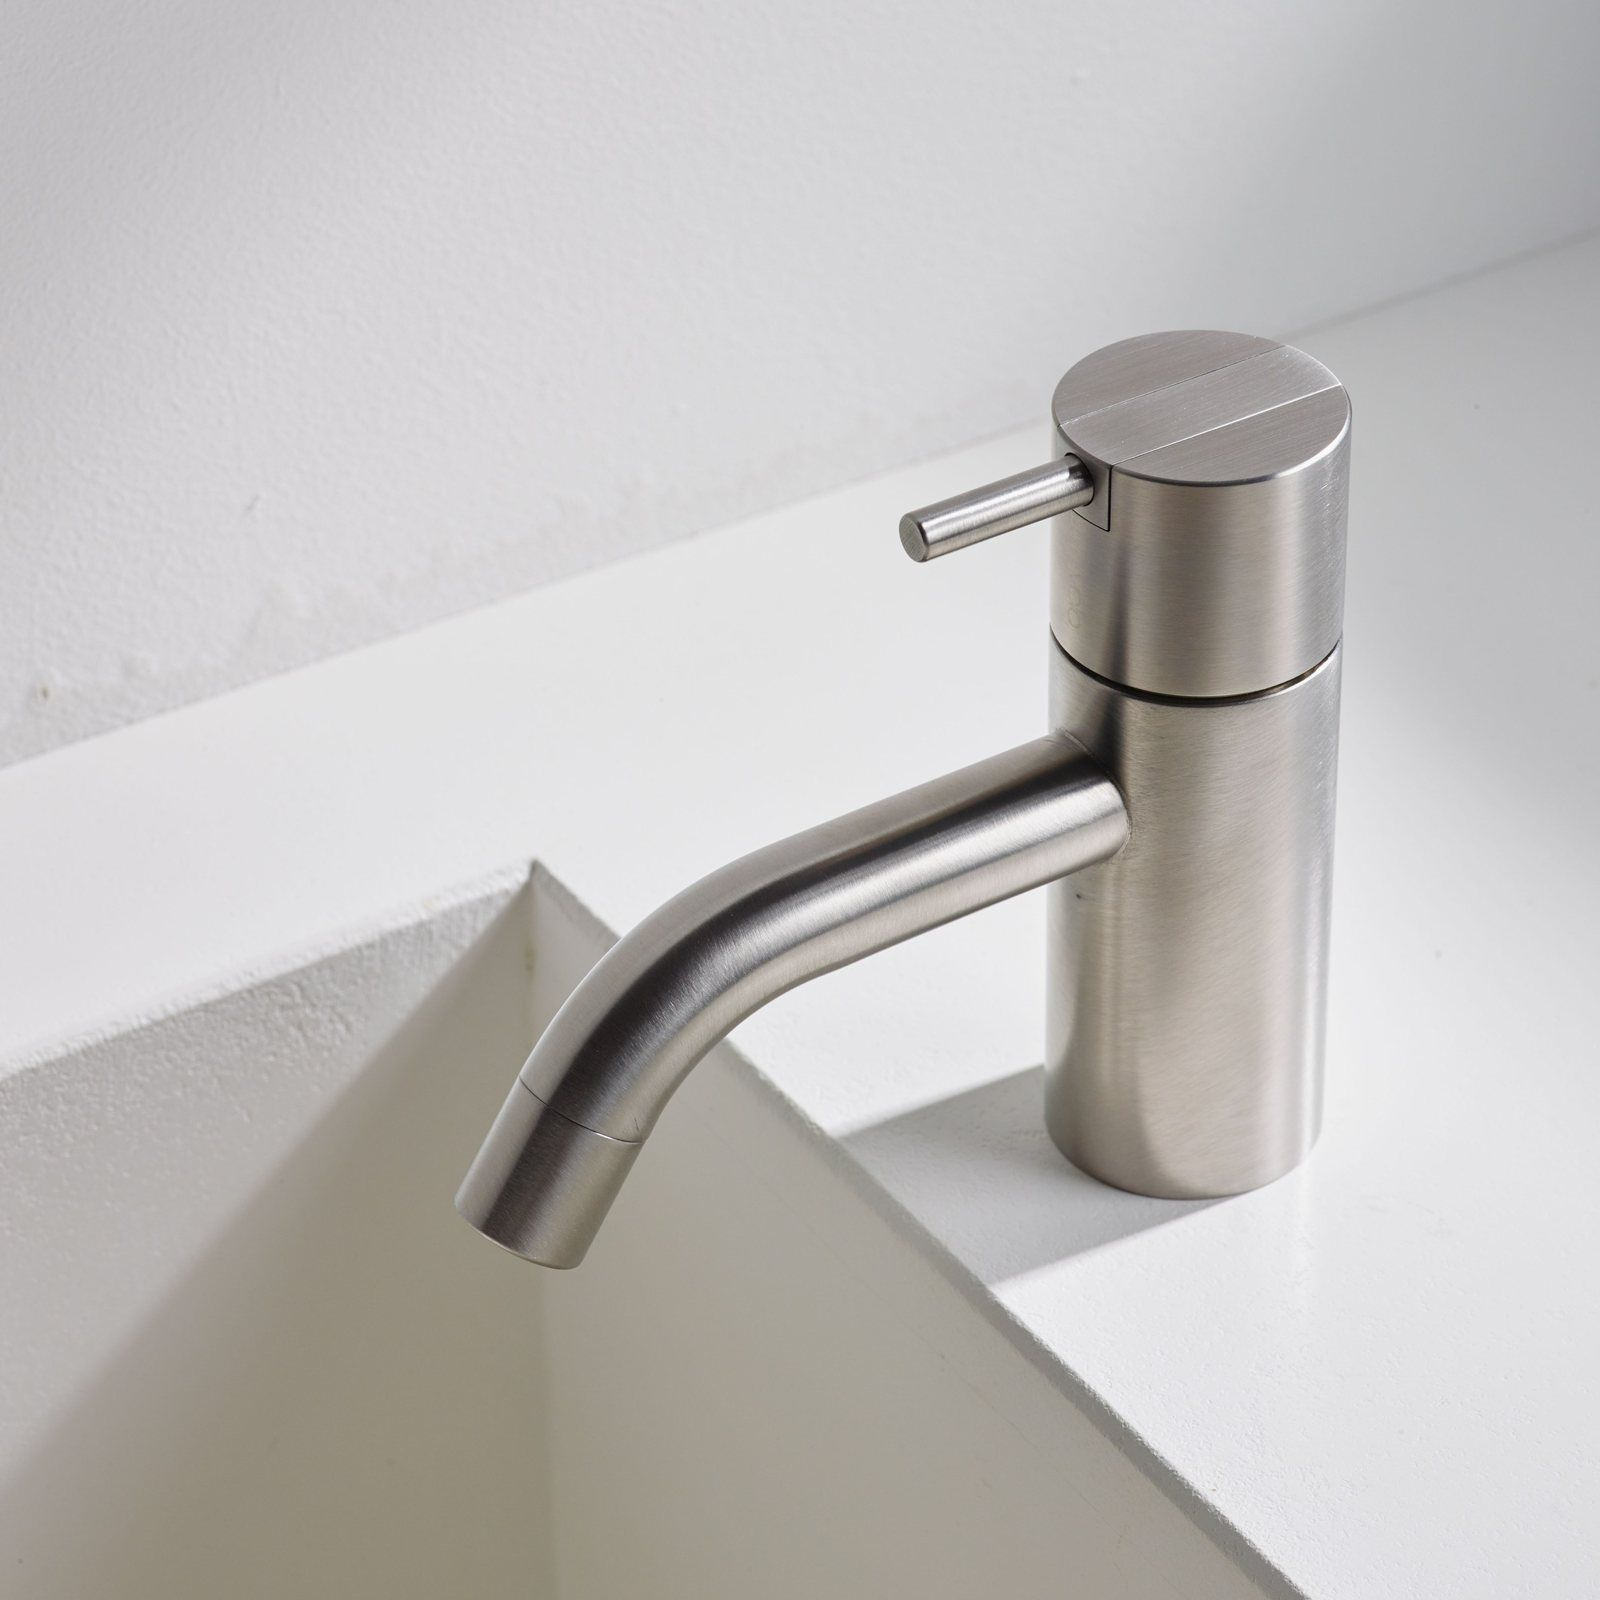 HV1 by Arne Jacobsen for Vola Bathroom accessories